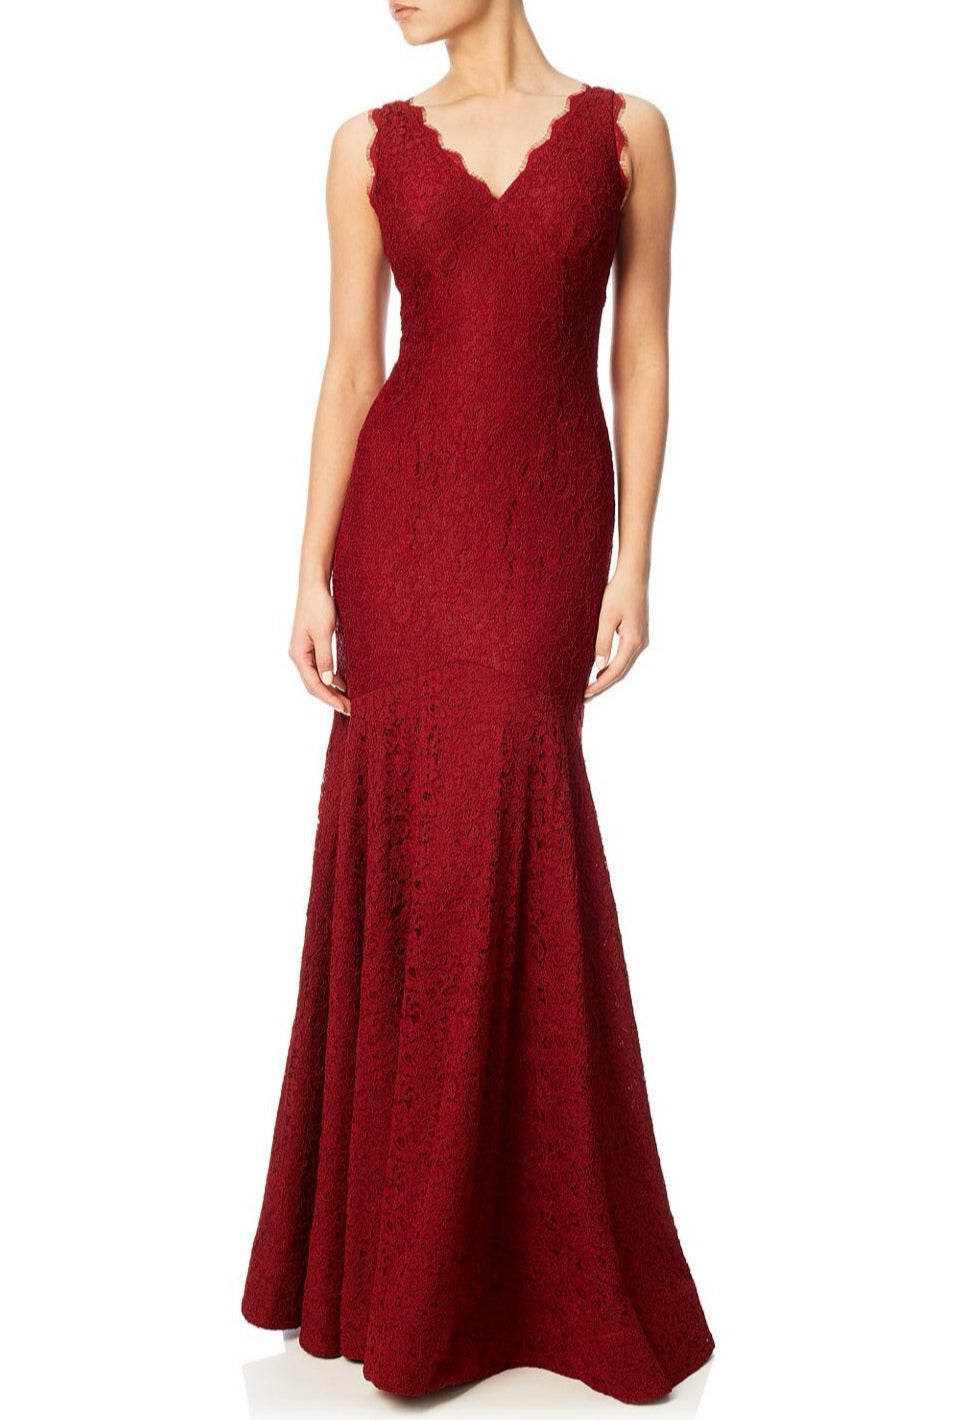 Rent: Adrianna Papell - Sleeveless V Neck Lace Trumpet Gown